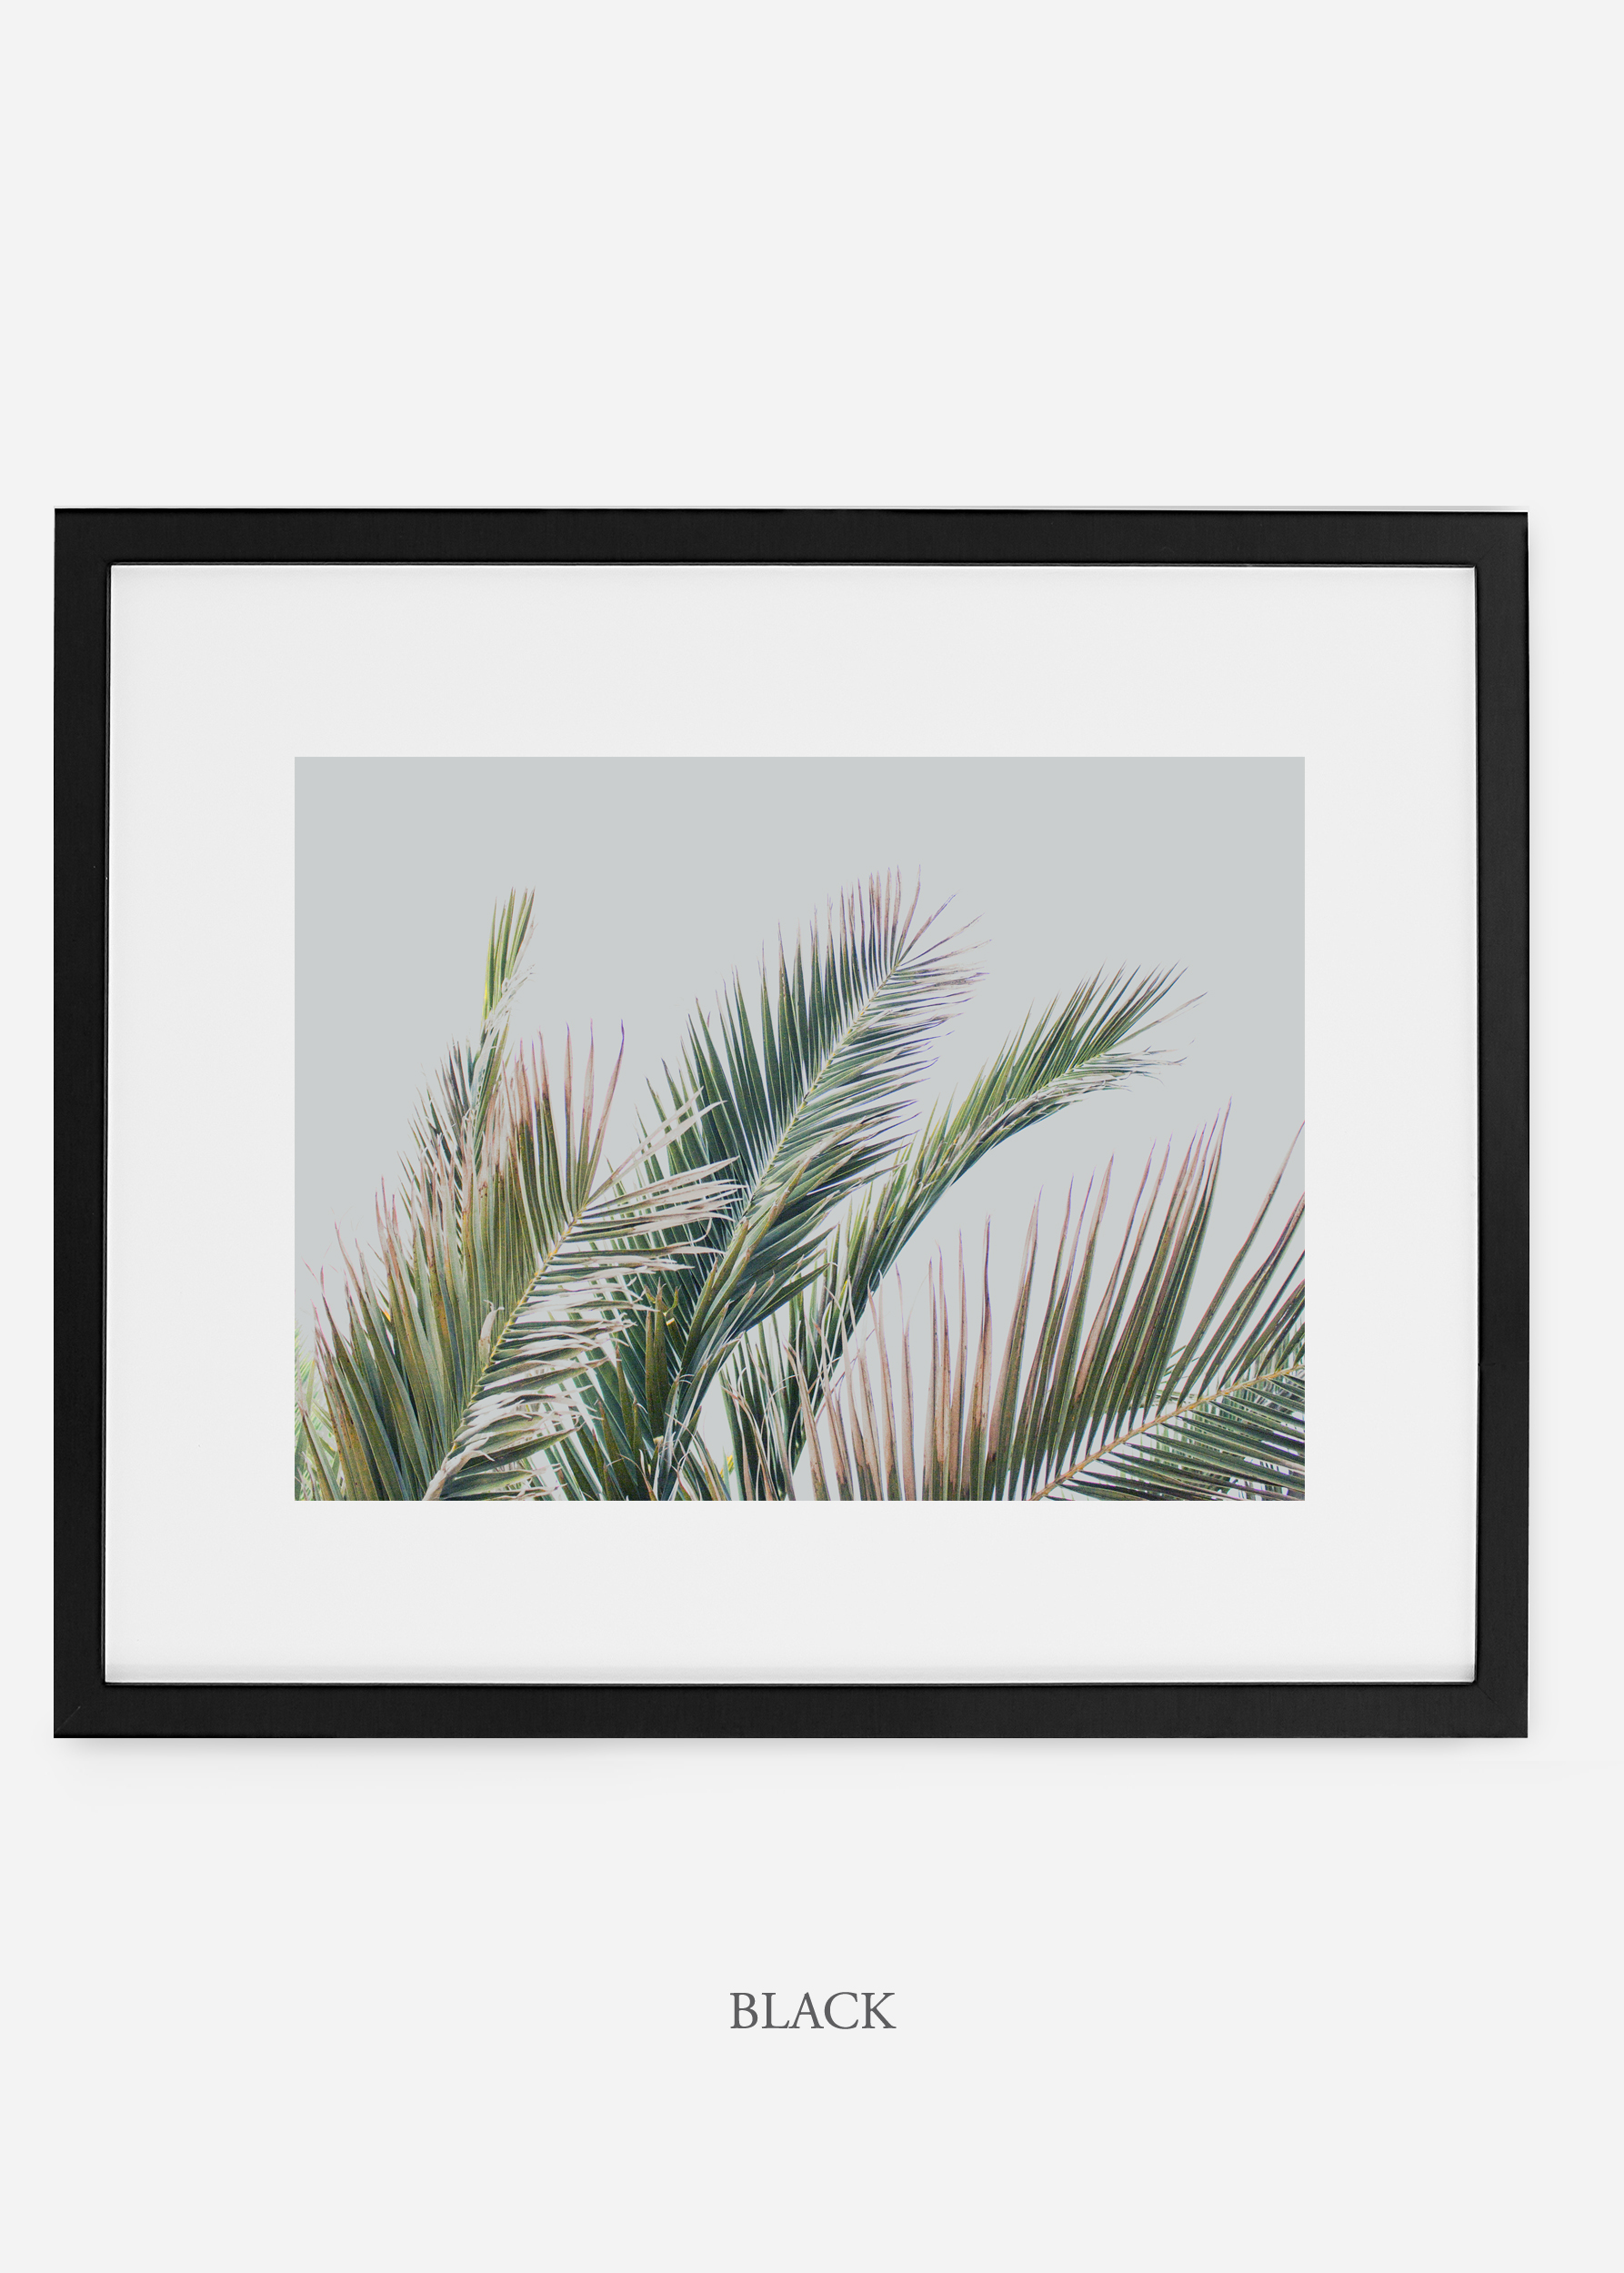 interiordesign_blackframe_art_tropical_palmtree_StormyGrayPalm.jpg